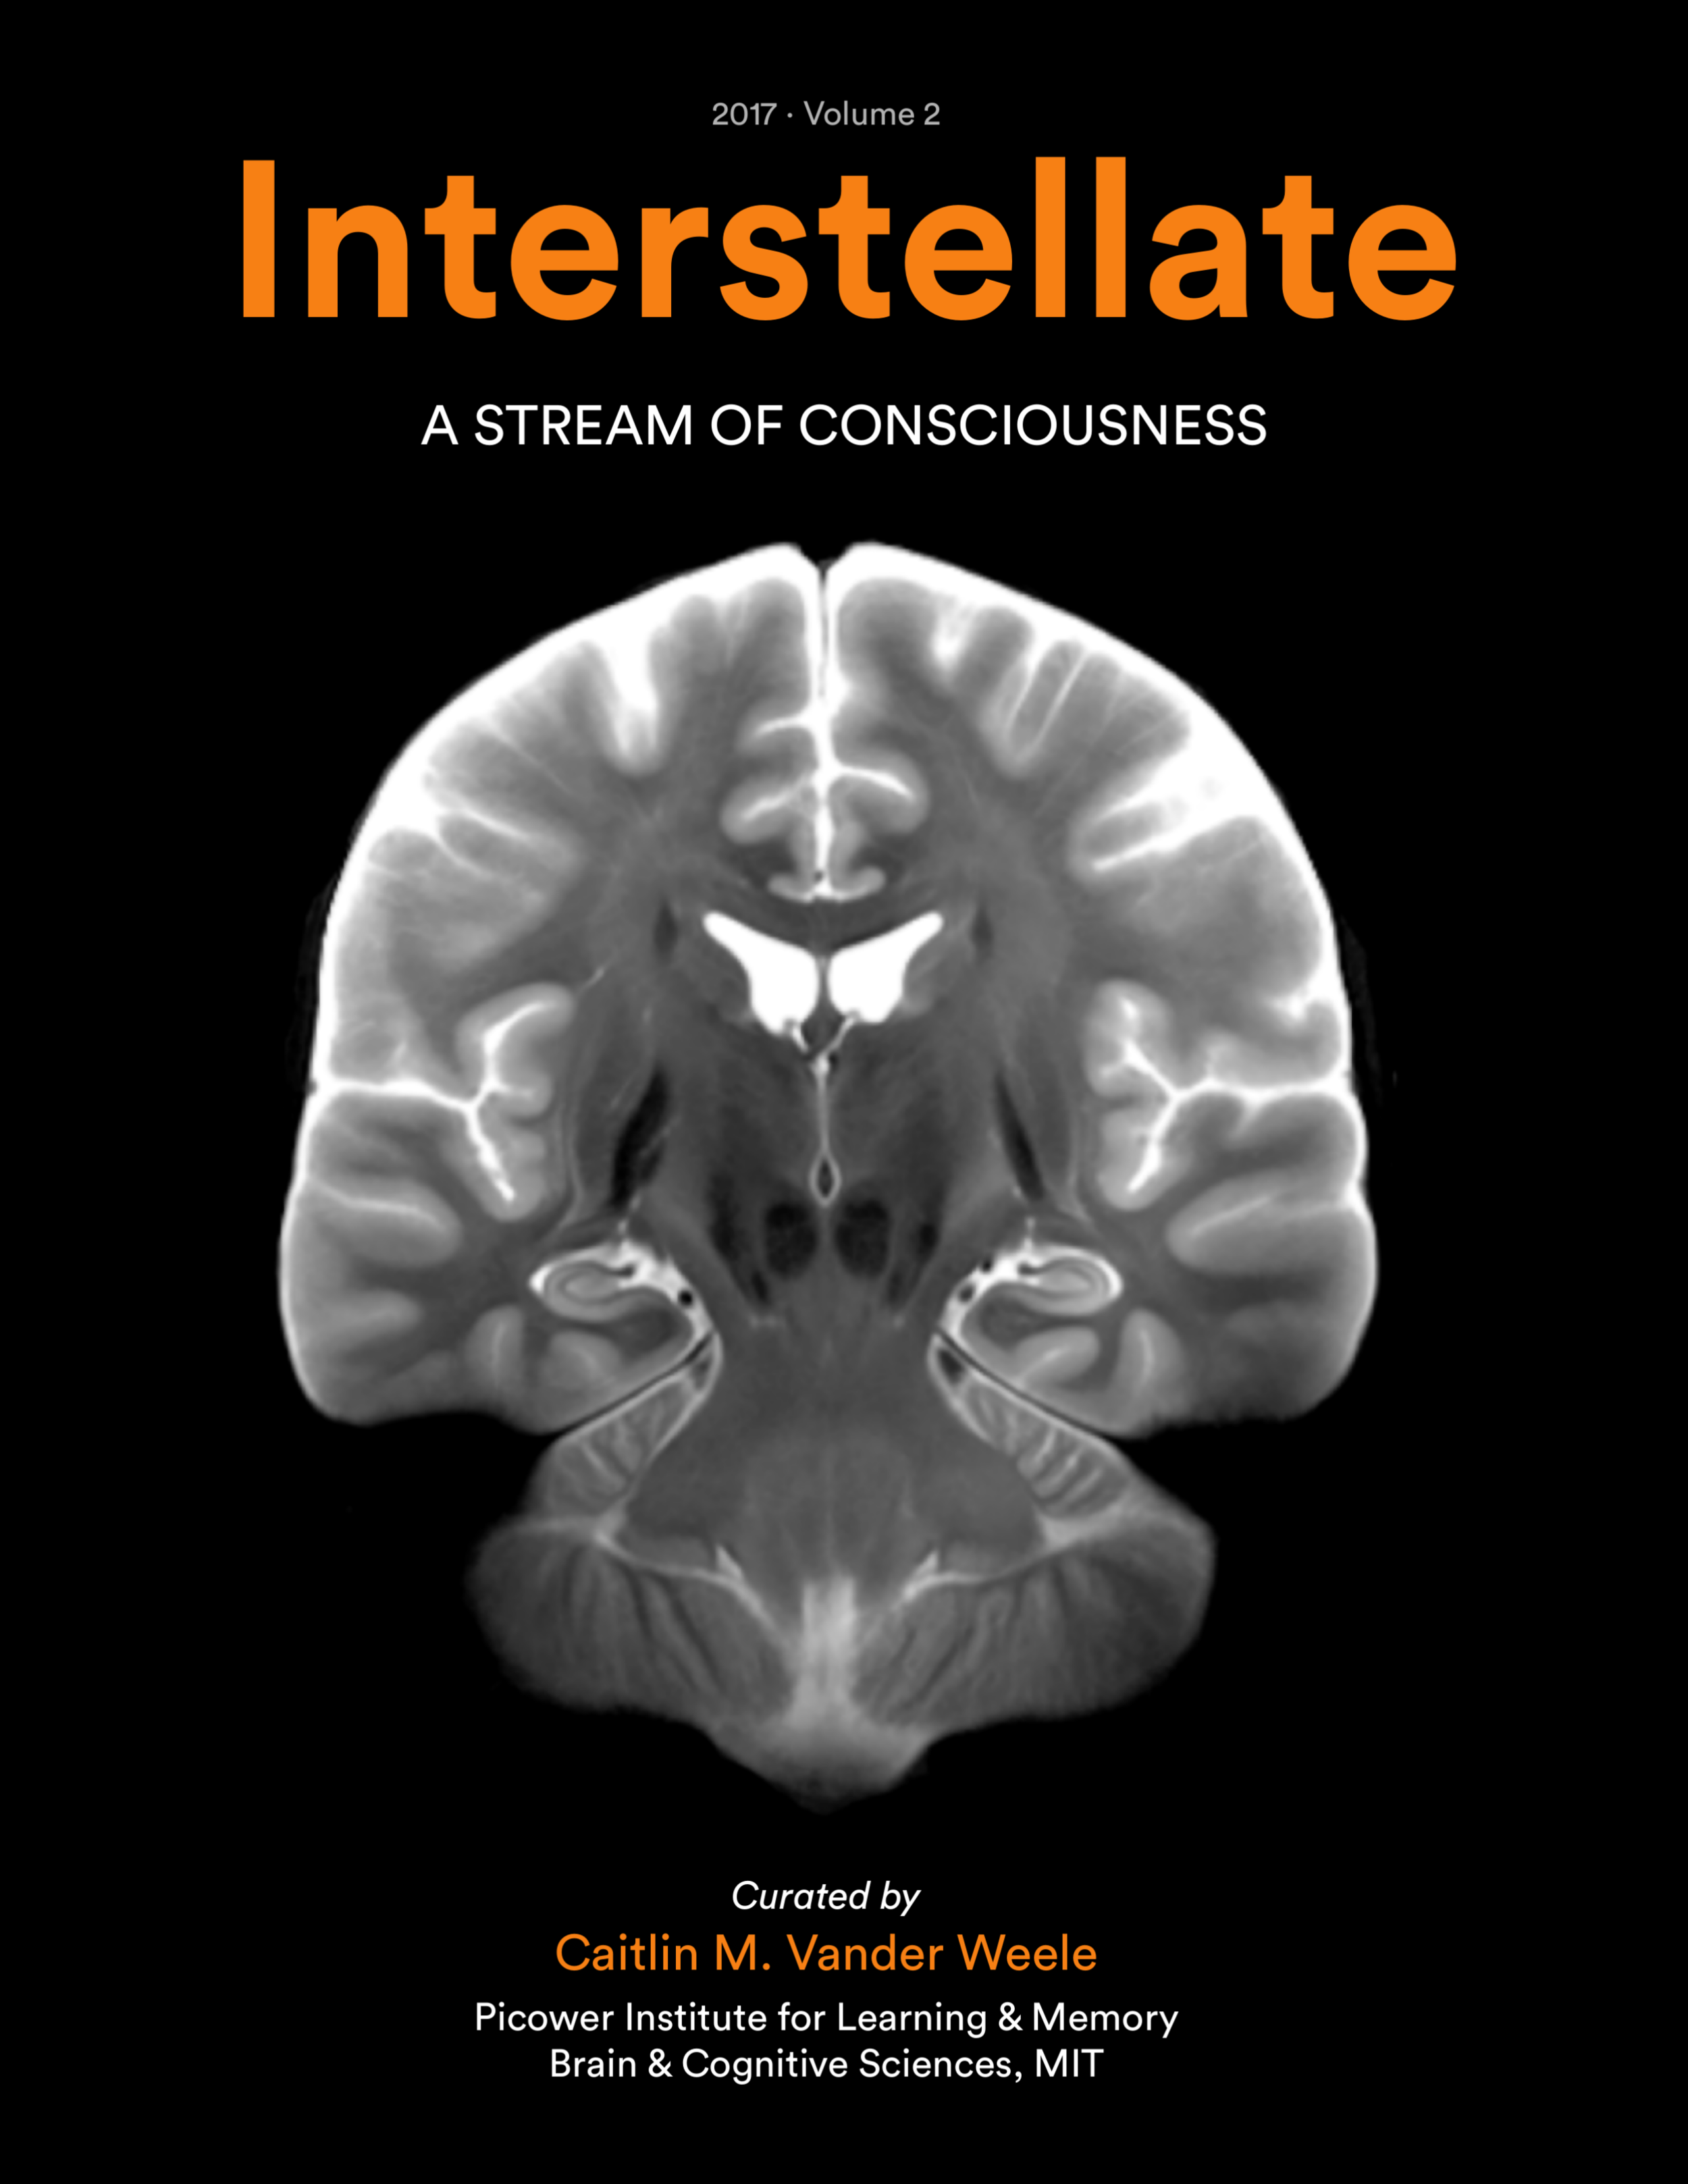 Interstellate_Volume2 - Untitled Page.png